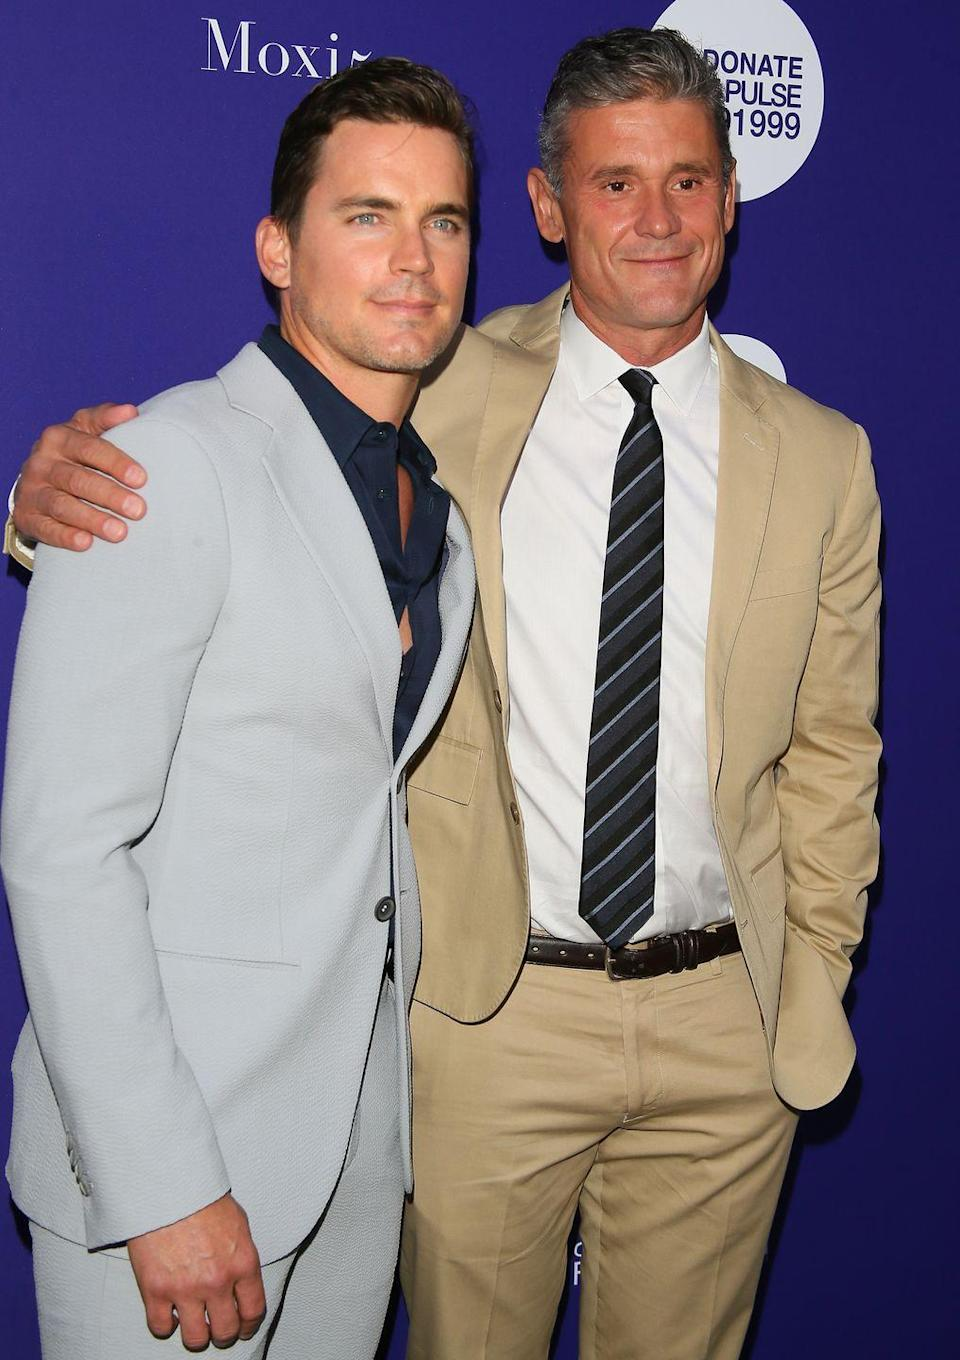 """<p><strong>Age gap: </strong>13 years </p><p>Matt wed his publicist, Simon, in 2011. Now the two share three sons together. When asked about his secret to a happy marriage, Matt told <a href=""""https://www.etonline.com/matt-bomer-shares-the-secrets-behind-his-long-lasting-marriage-exclusive-98814"""" rel=""""nofollow noopener"""" target=""""_blank"""" data-ylk=""""slk:Entertainment Tonight"""" class=""""link rapid-noclick-resp""""><em>Entertainment Tonight</em></a> that the couple tries to take everything """"one day at a time.""""</p>"""